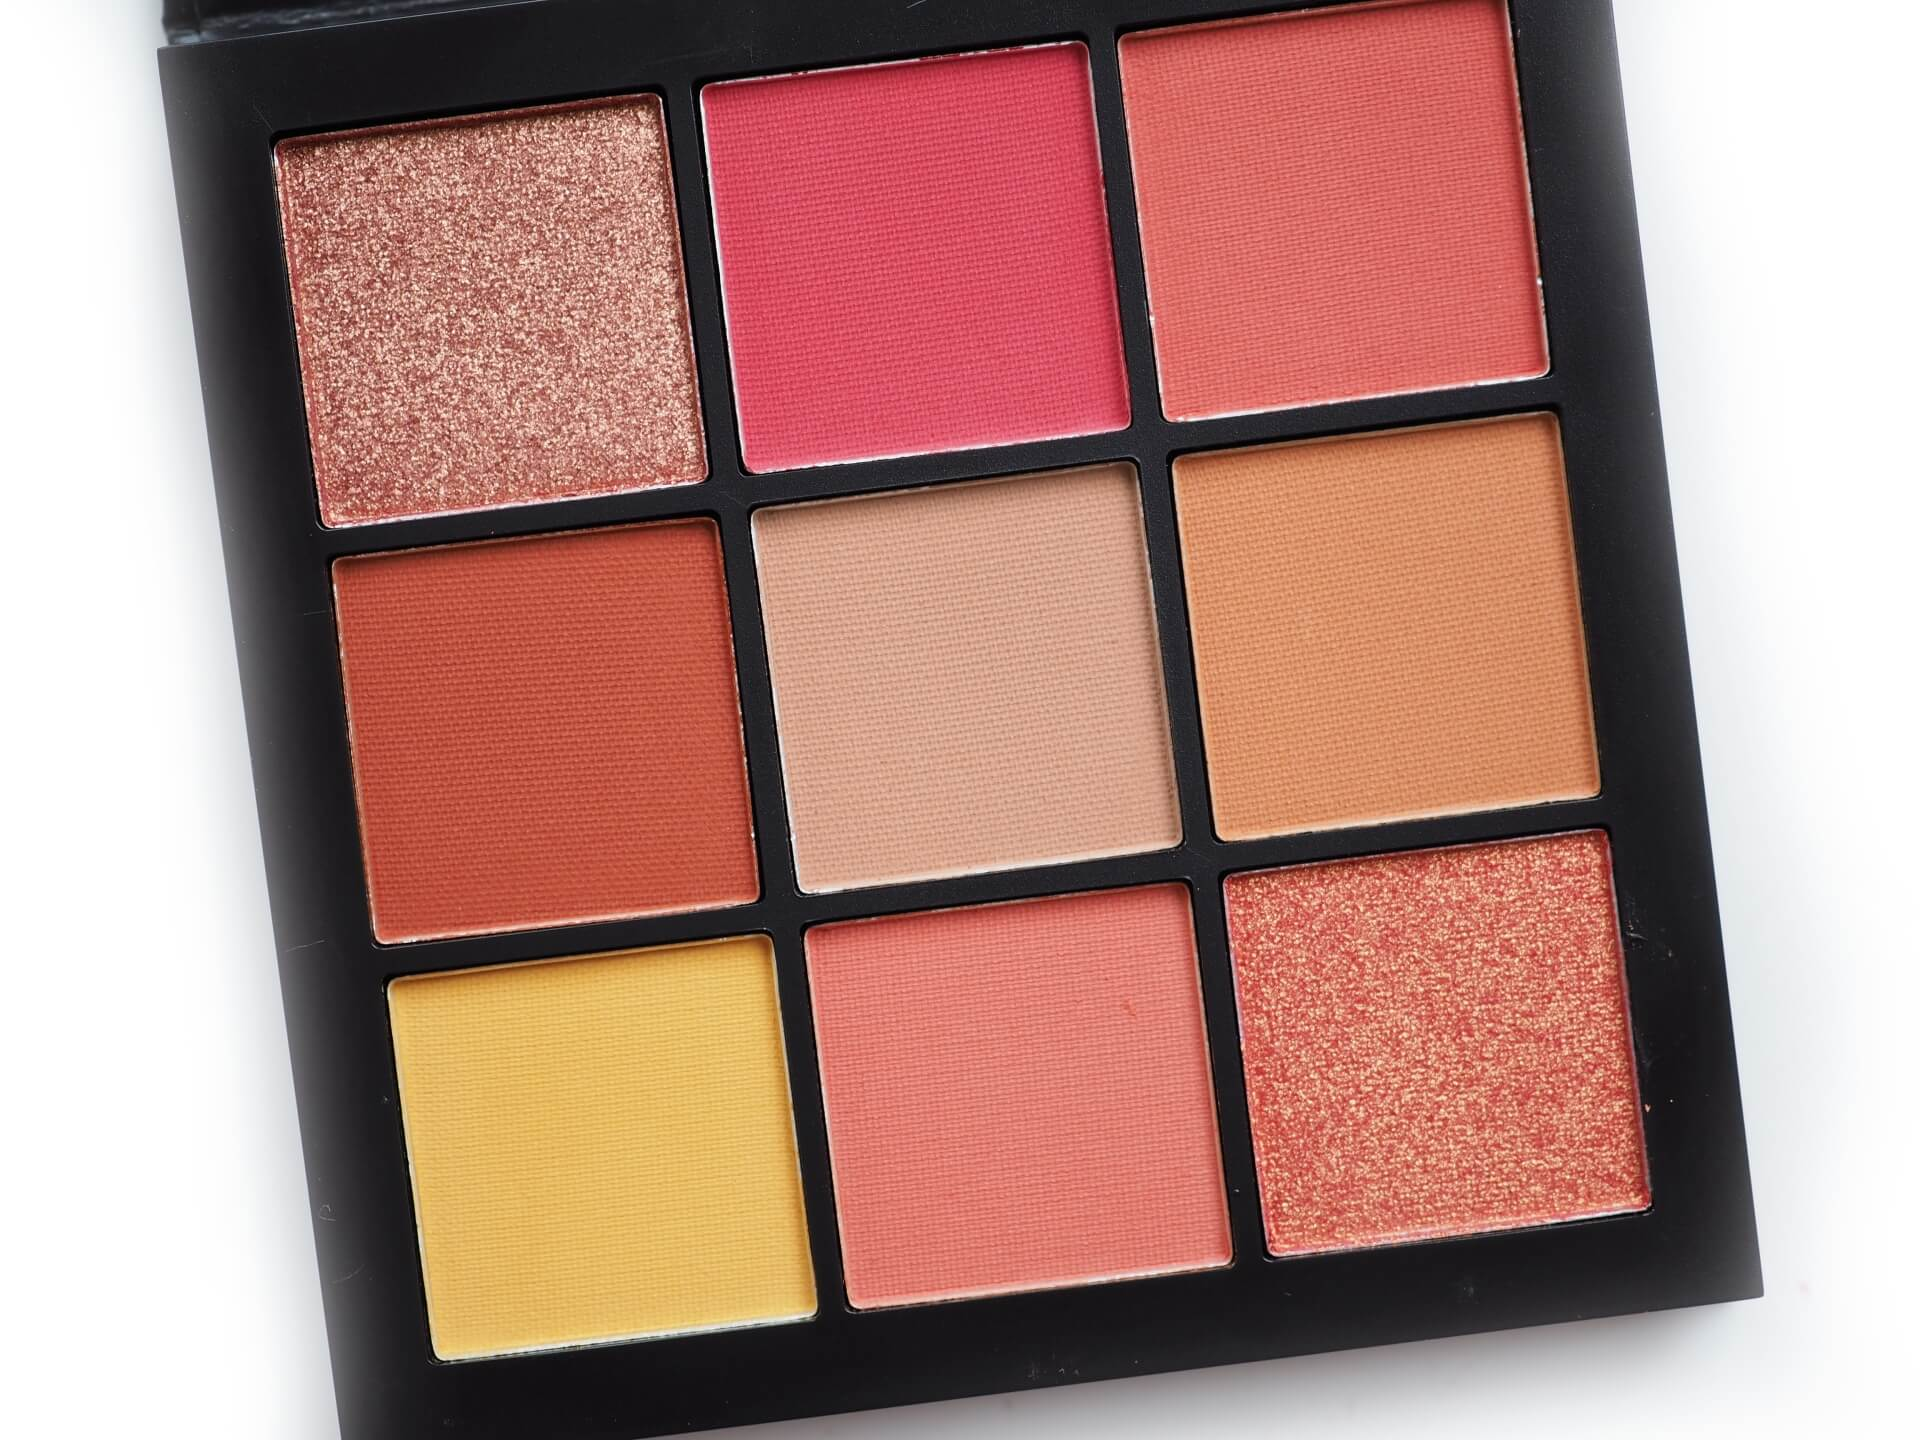 Huda Coral Obsessions Palette